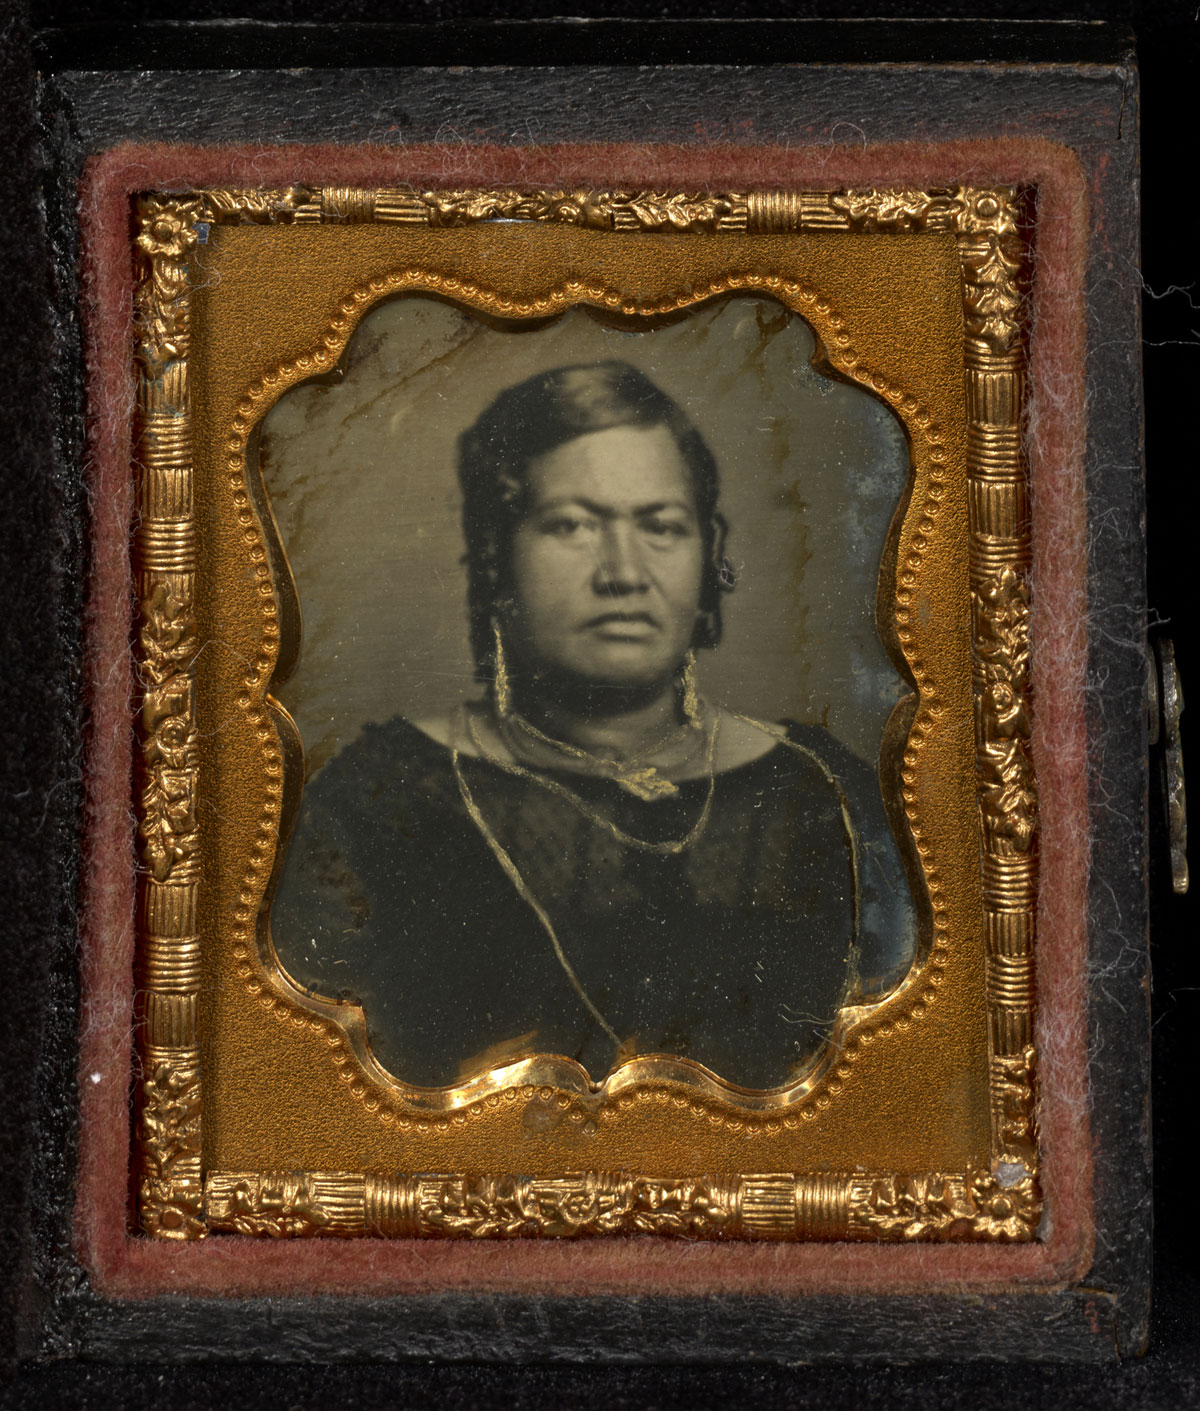 Fotó: Attributed to Dr. Hugo Stangenwald (Austrian, born Germany, 1829-1899)<br />Portrait of Queen Kalama of Hawaii<br />c. 1853-1854<br />Daguerreotype, hand-colored<br />1/16 plate<br />Image: 3 x 2.5 cm (1 3/16 x 1 in.)<br />Mat: 4.1 x 3.5 cm (1 5/8 x 1 3/8 in.)<br />Open: 5.1 x 8.9 cm (2 x 3 1/2 in.)<br />The J. Paul Getty Museum, Los Angeles